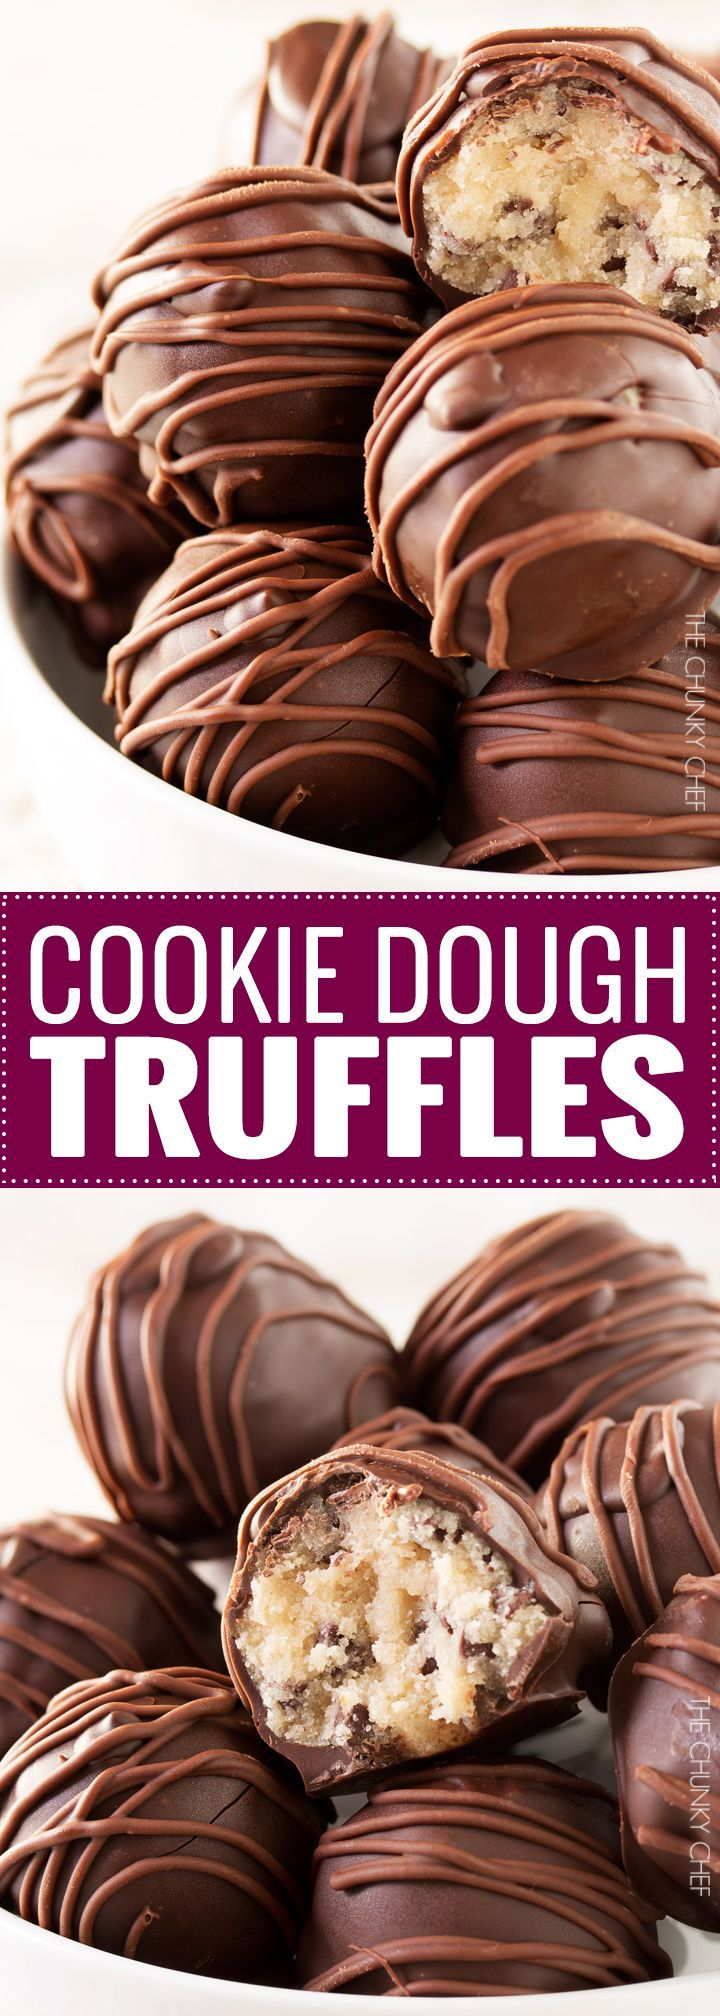 Triple Chocolate Cookie Dough Truffles | These cookie dough truffles are made from an egg-less cookie dough with semi sweet chocolate chips, then coated in two different kinds of chocolate! | http://thechunkychef.com